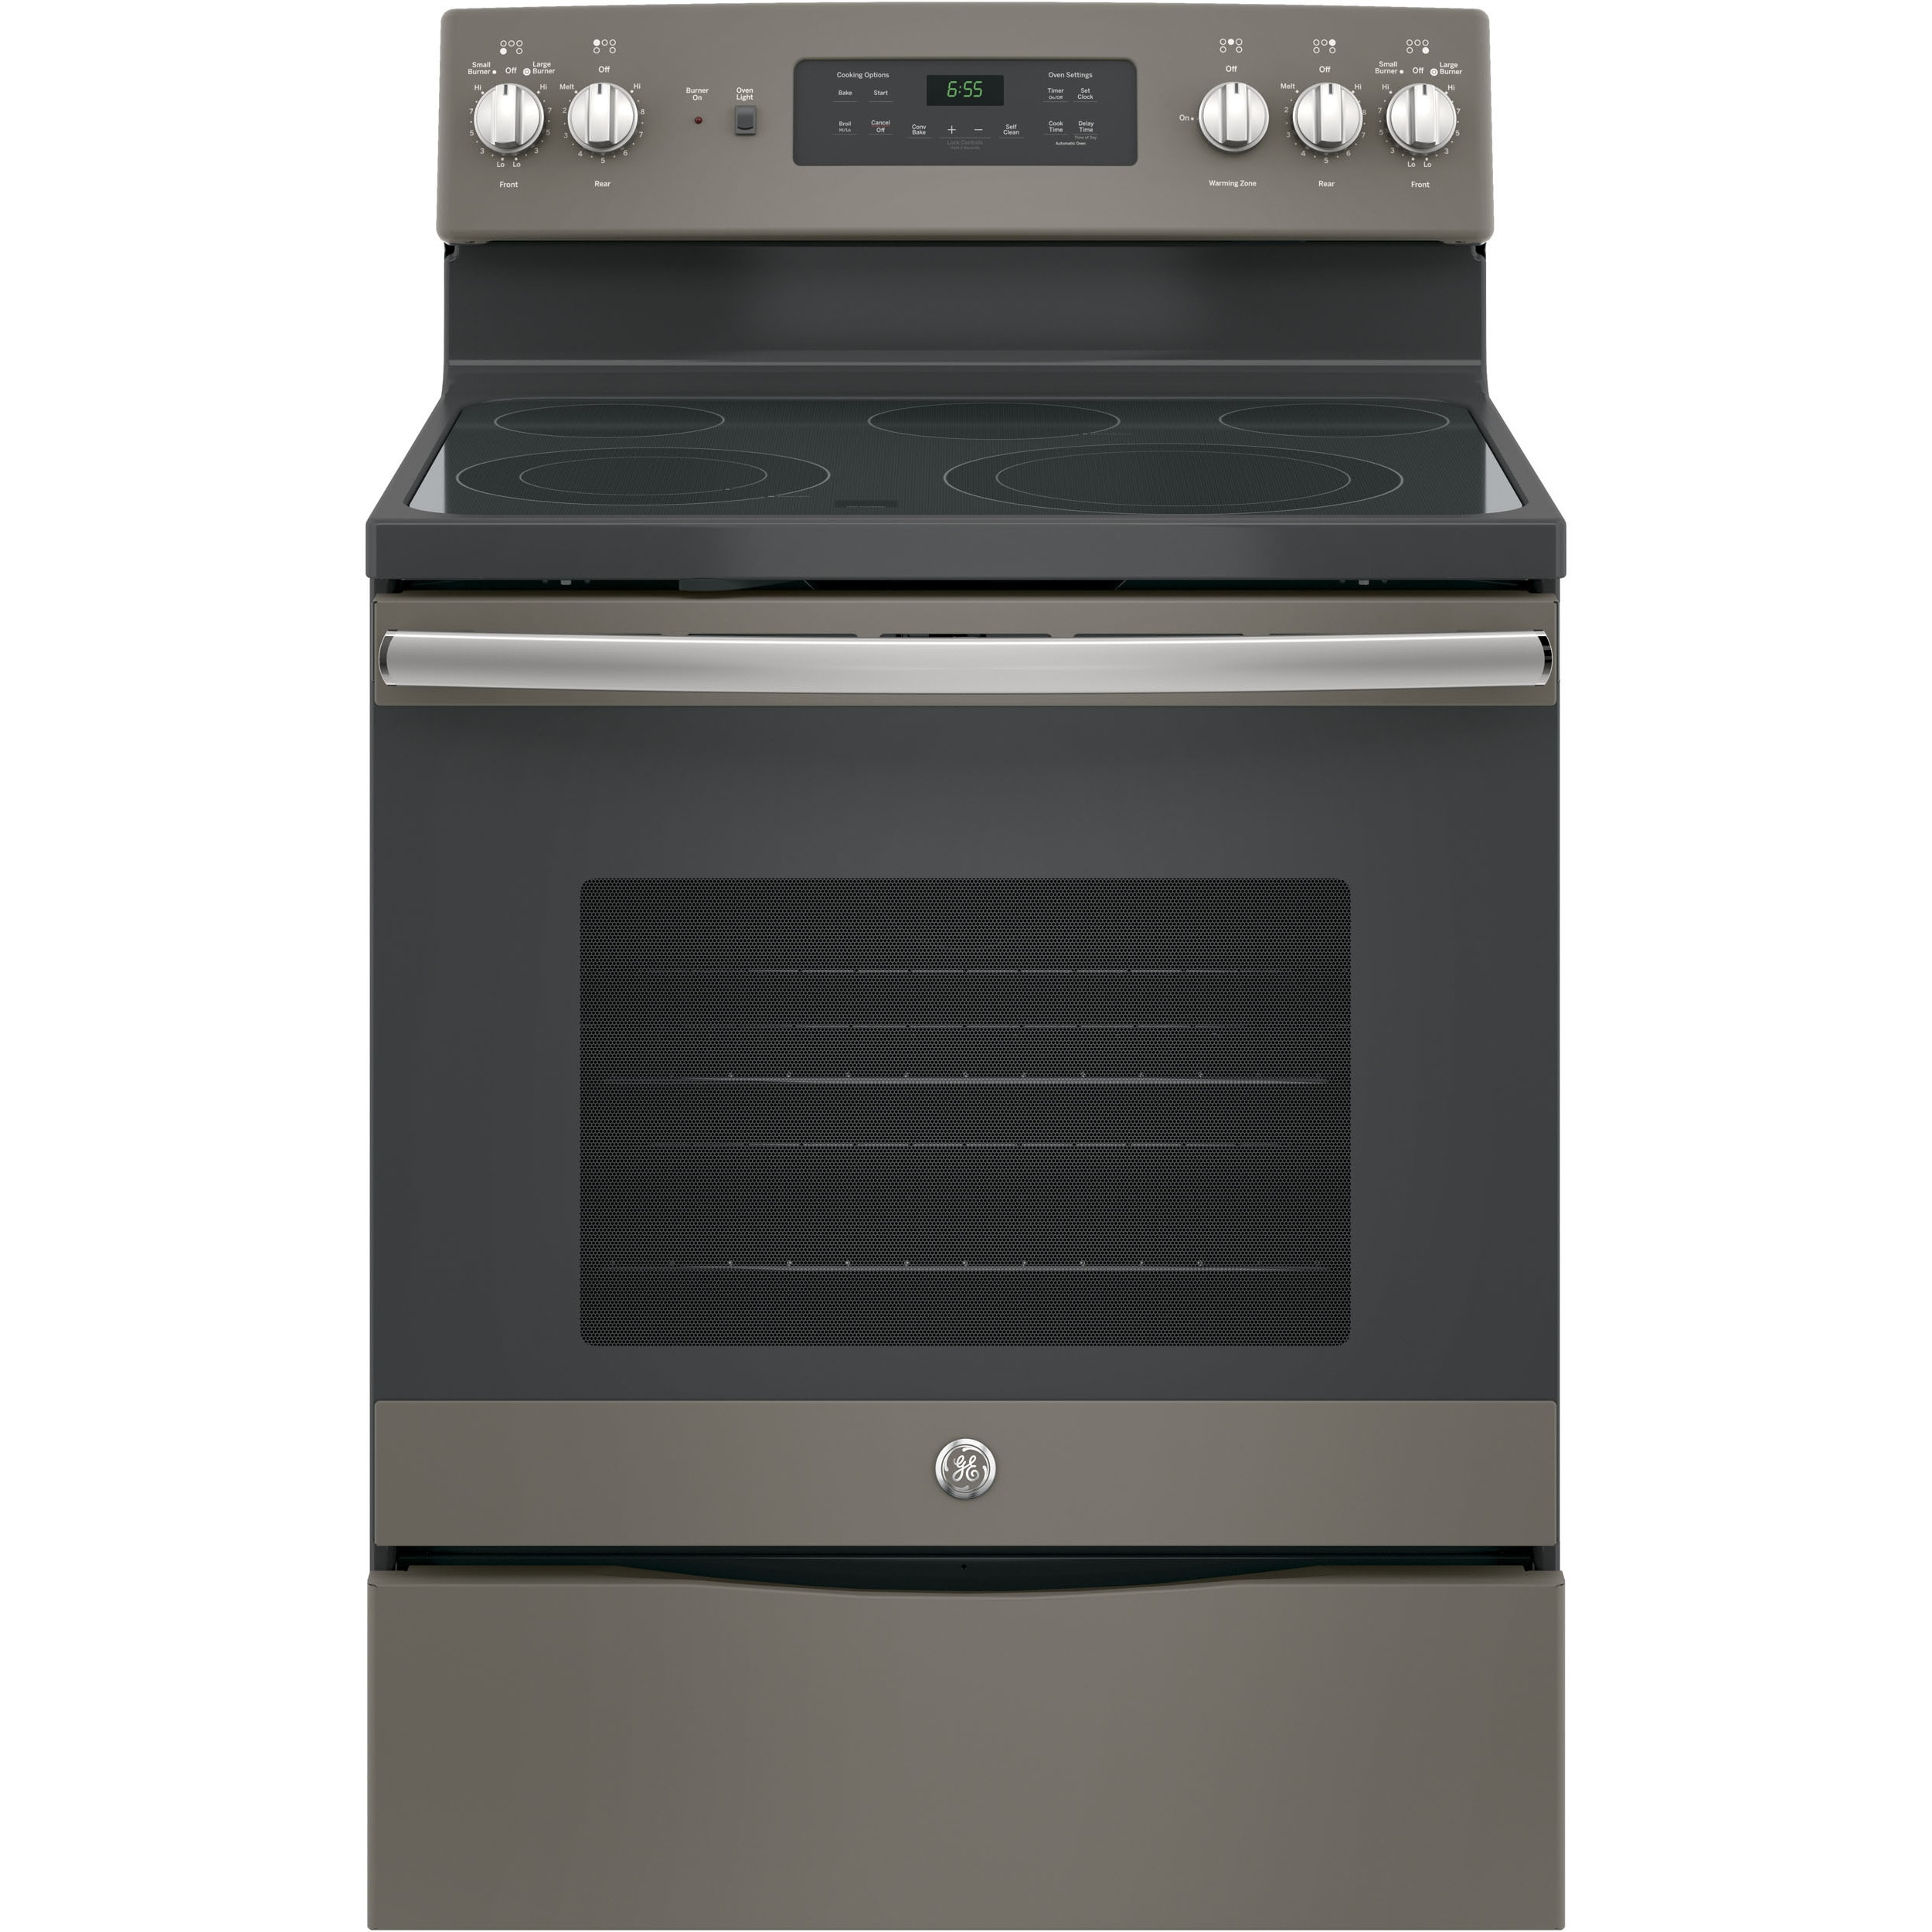 GE 30-inch Free-Standing Electric Convection Range Slate